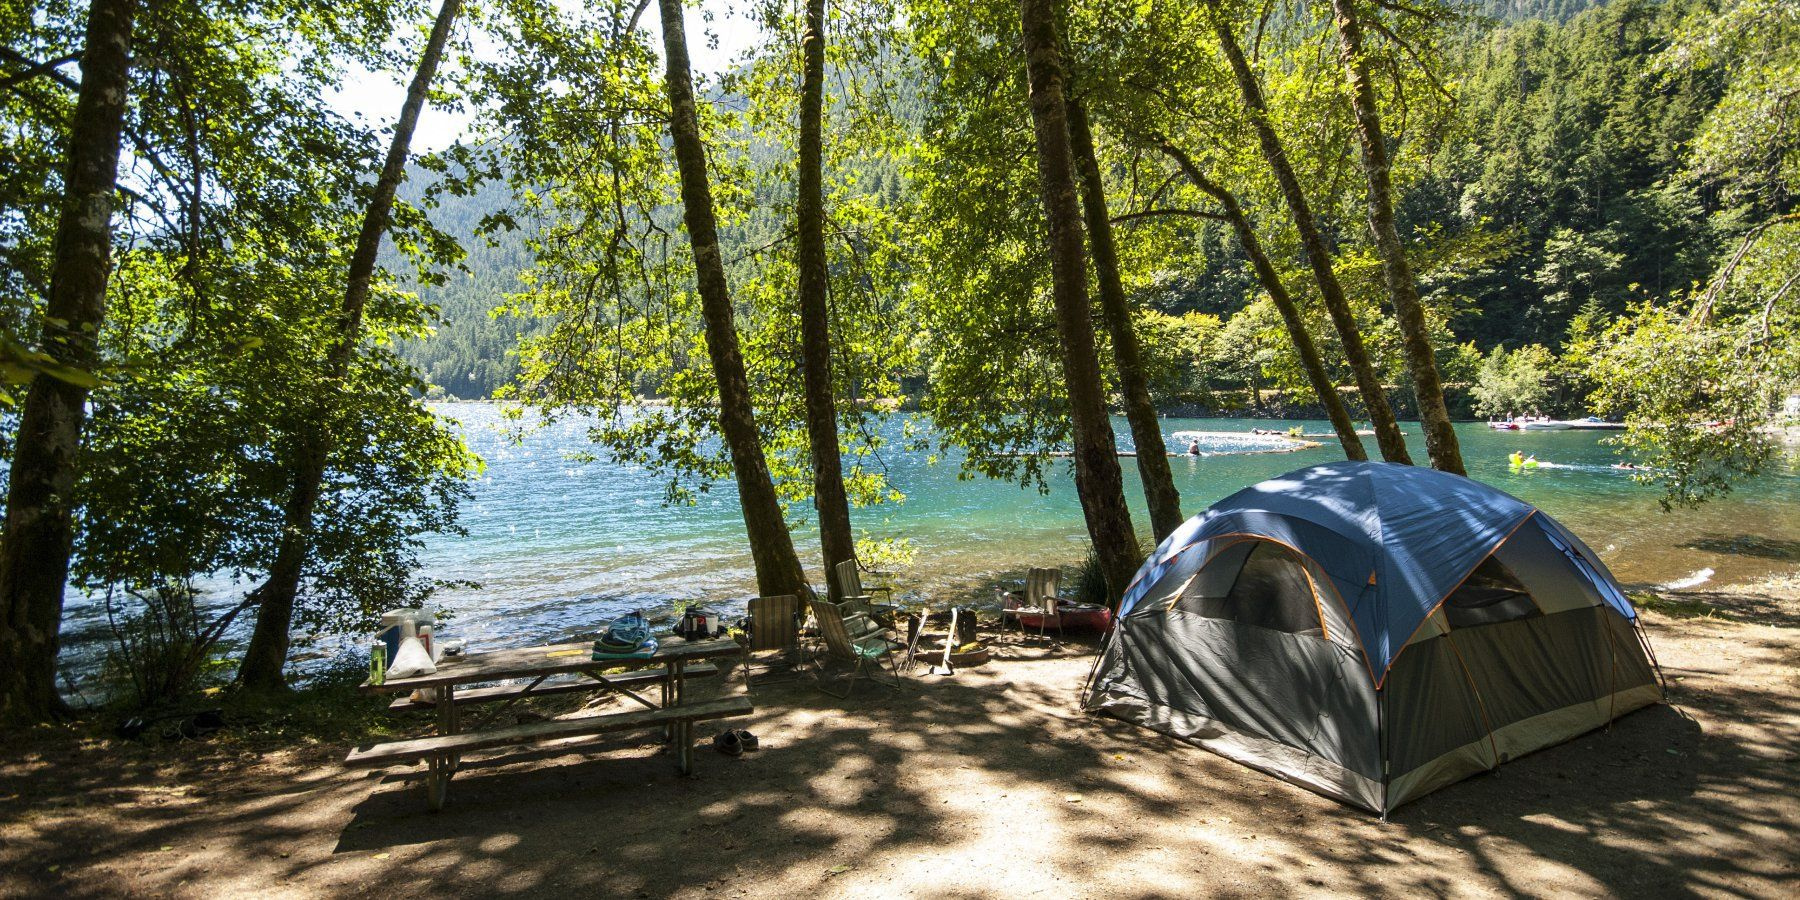 Camping at Fairholme Campground on the western shores of Lake Crescent.-  Olympic National Park